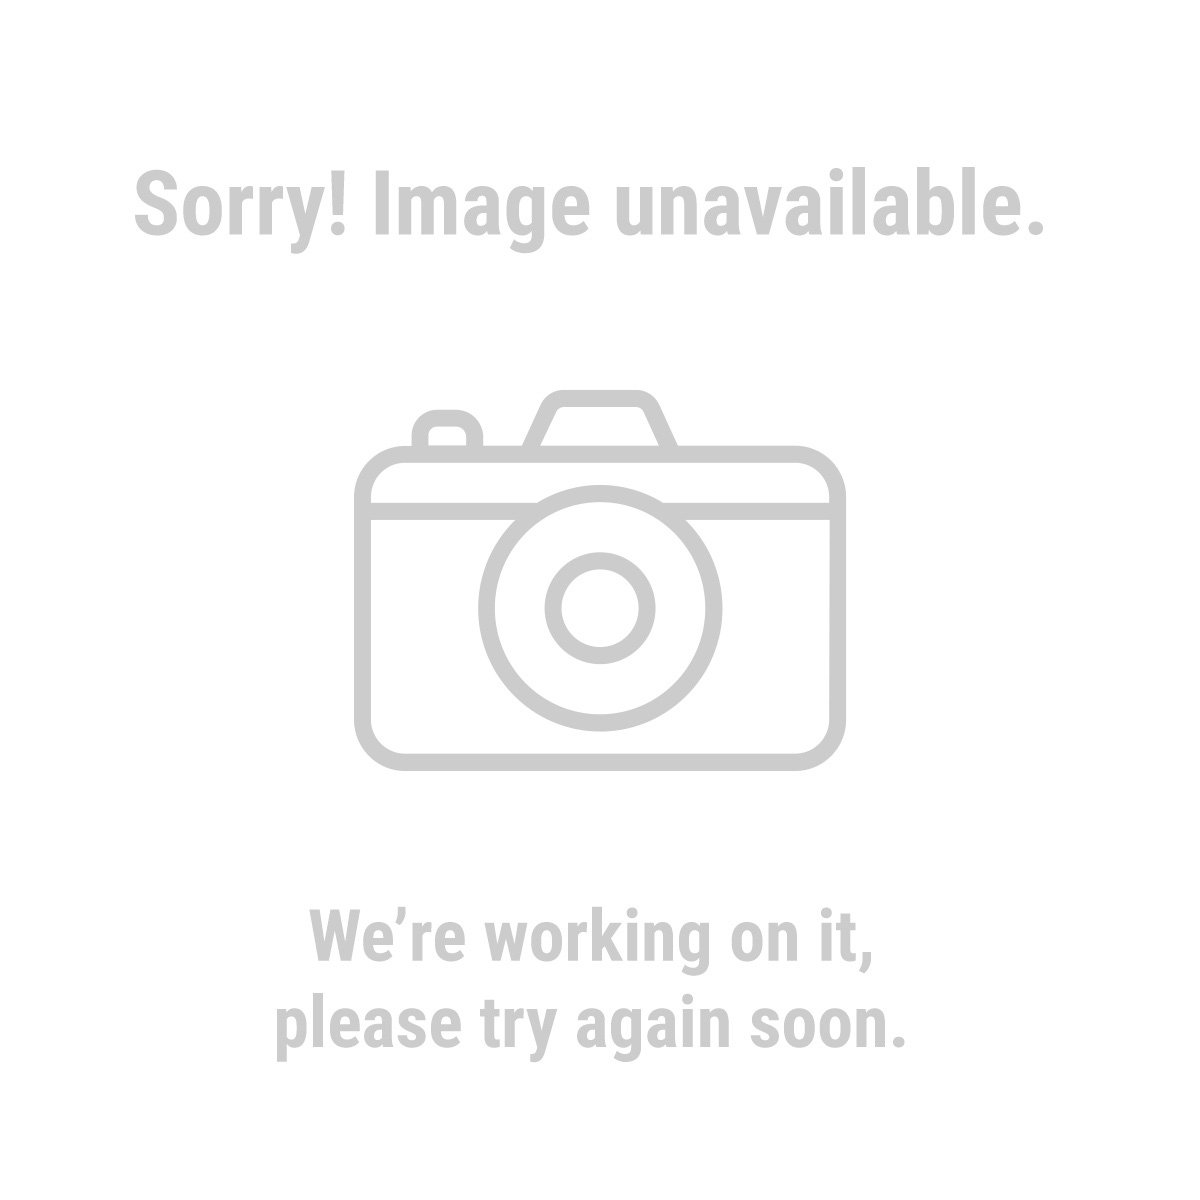 Warrior 61448 4-1/2 in. 24 Grit Metal Grinding Wheel